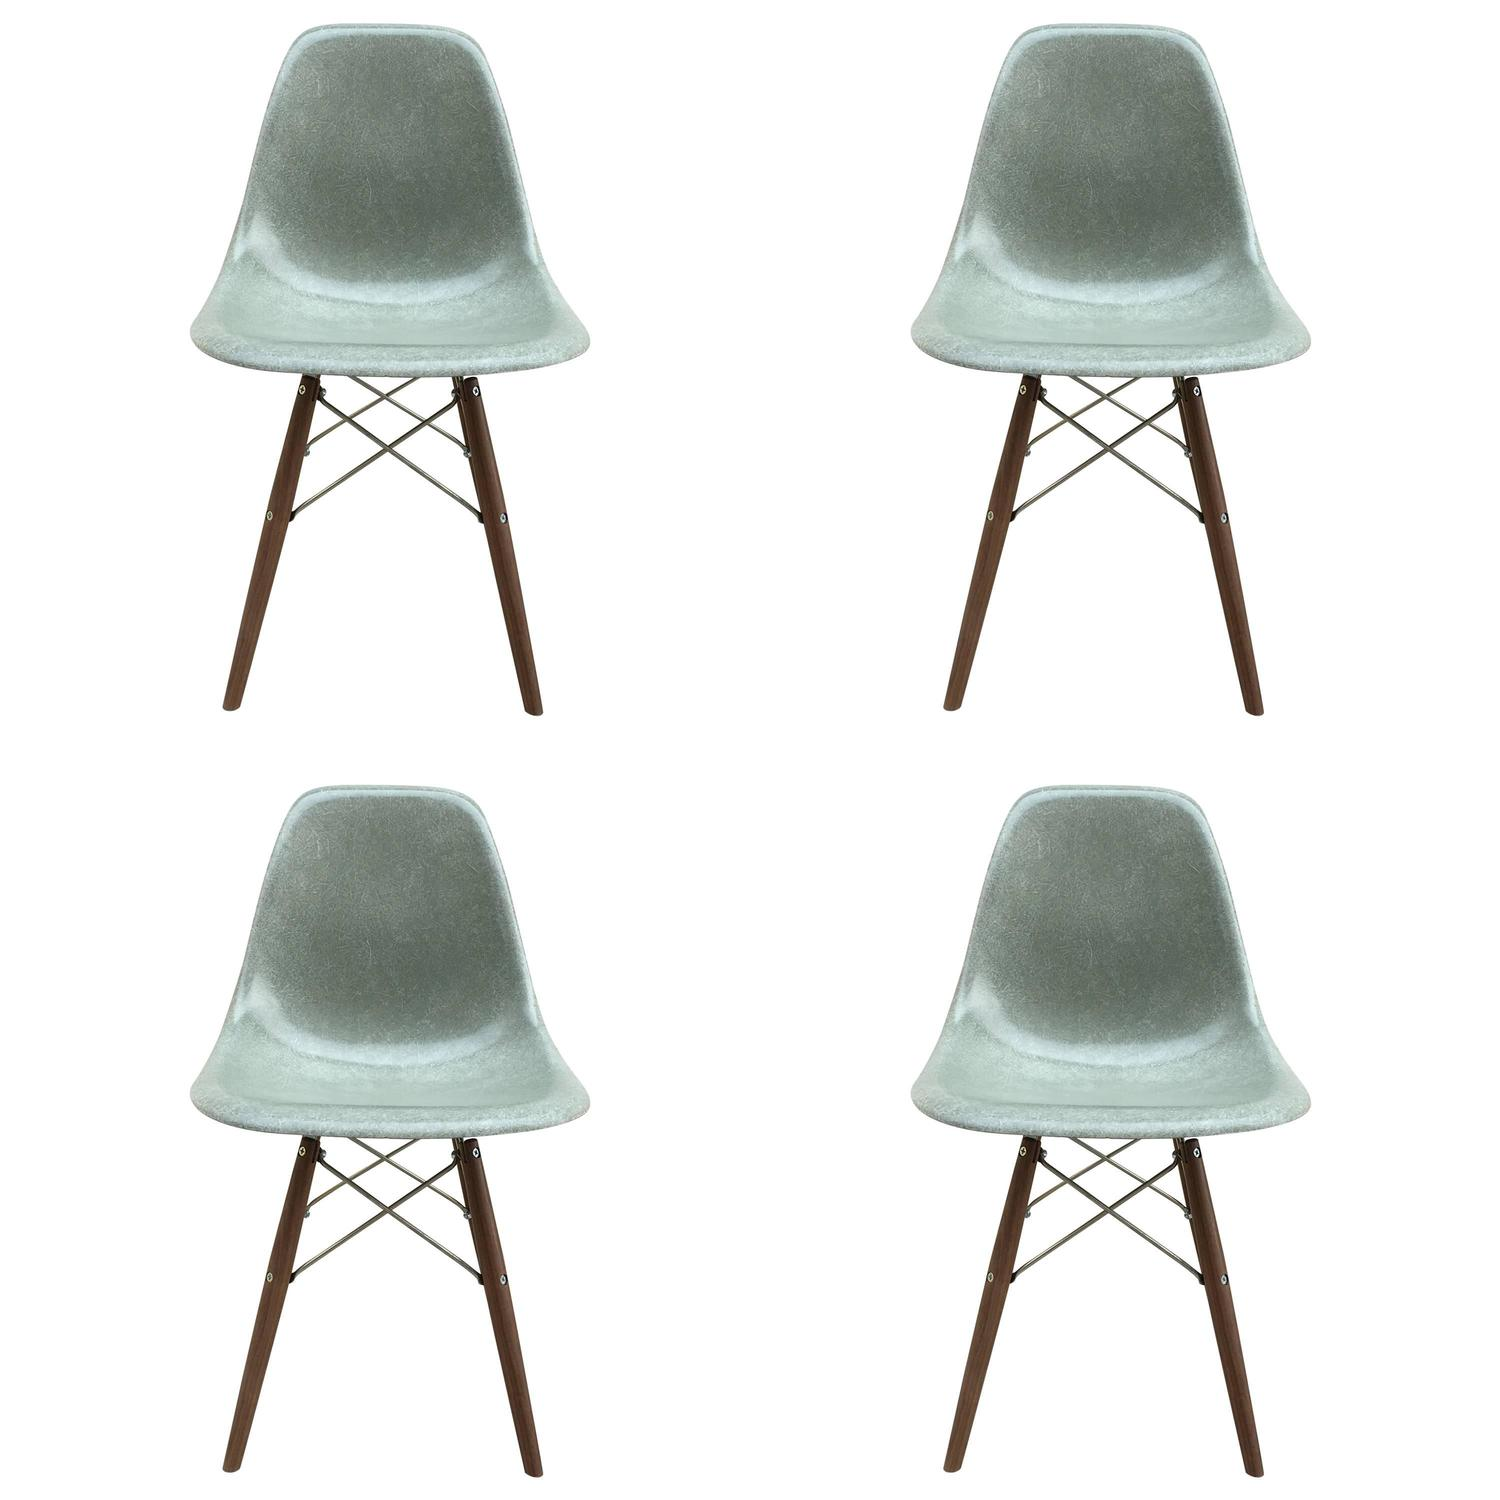 Four Herman Miller Eames Seafoam Dining Chairs For Sale at  : 4757653z from www.1stdibs.com size 1500 x 1500 jpeg 101kB